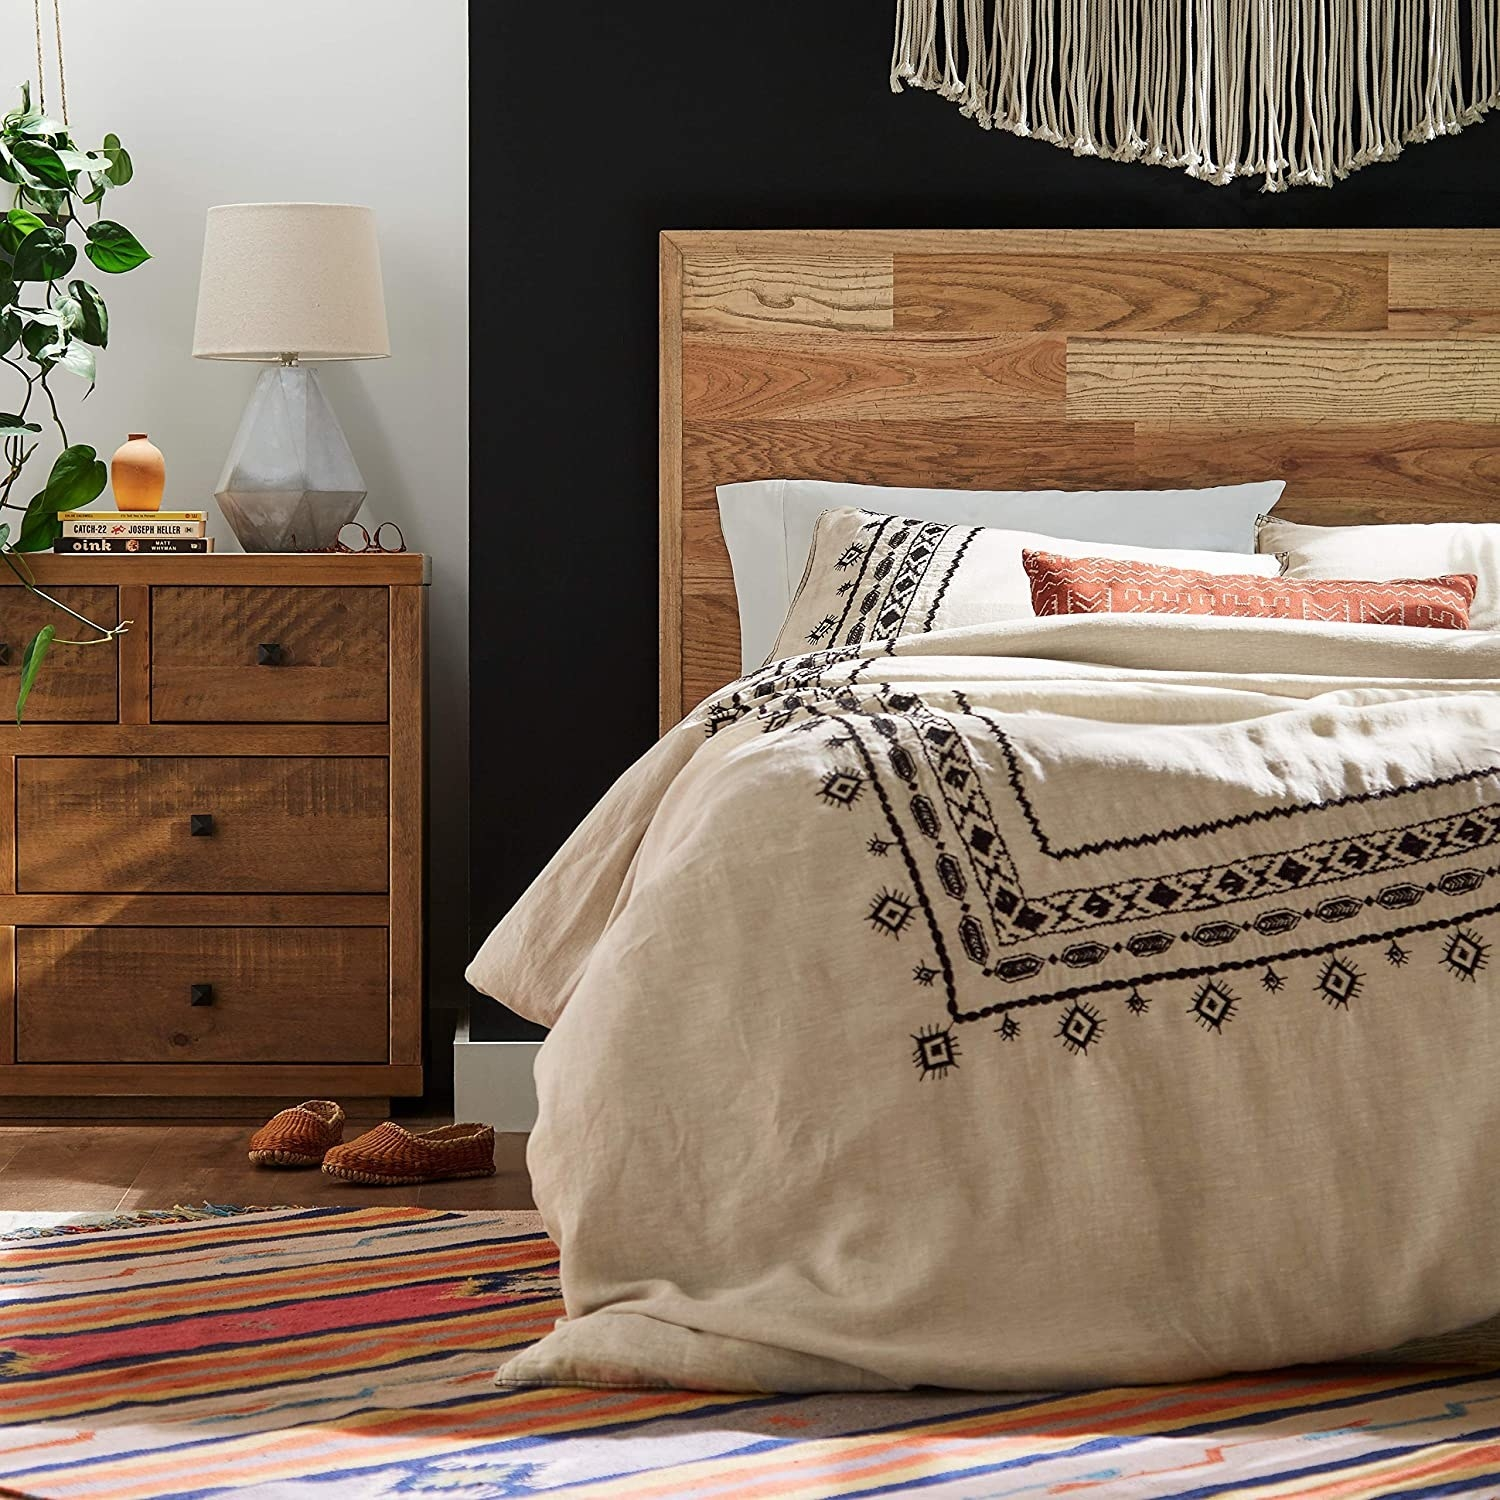 a white linen duvet cover with black geometric embroidery